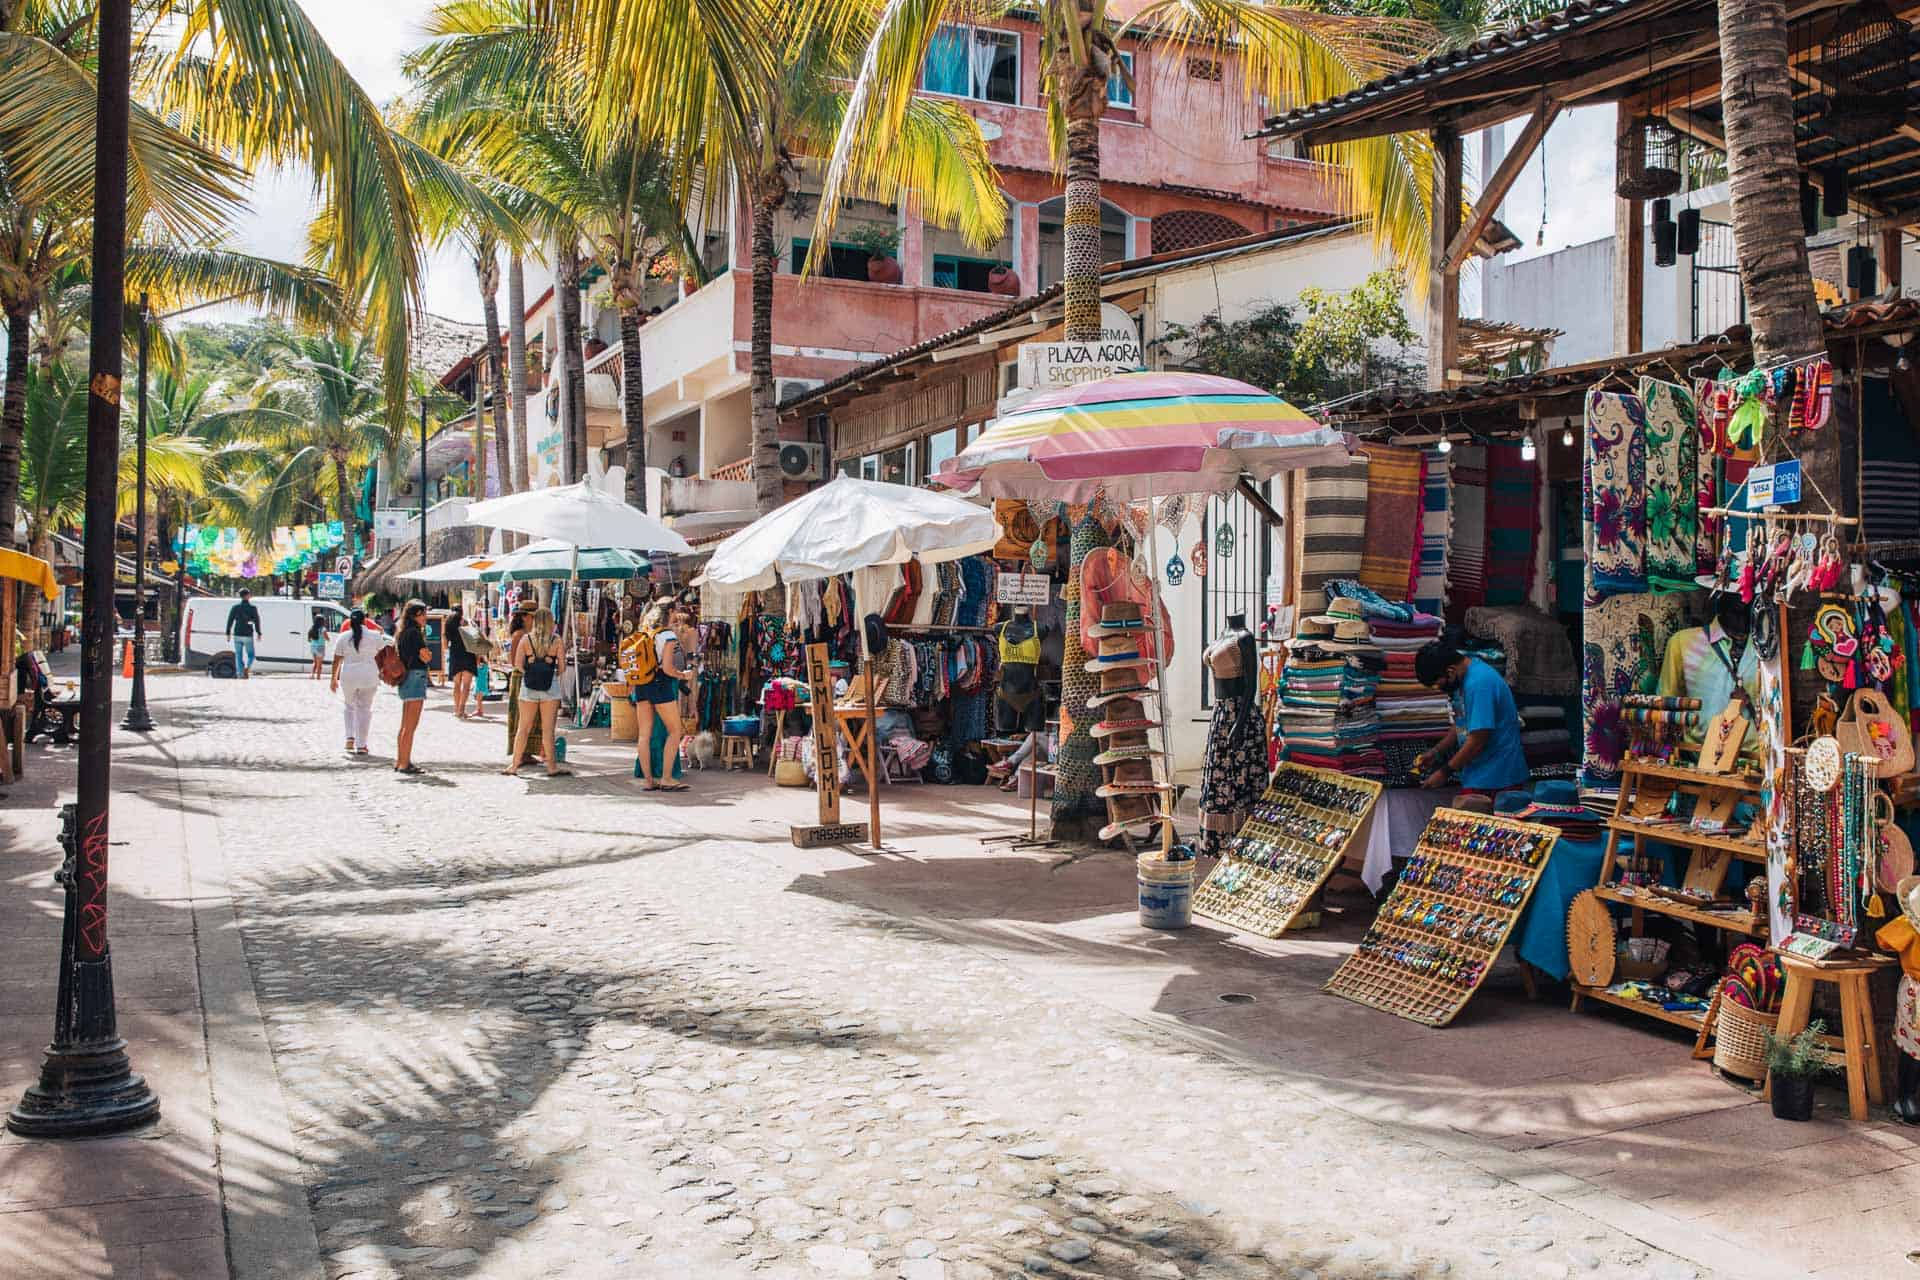 things to do in sayulita, sayulita mexico, what to do in sayulita, sayulita